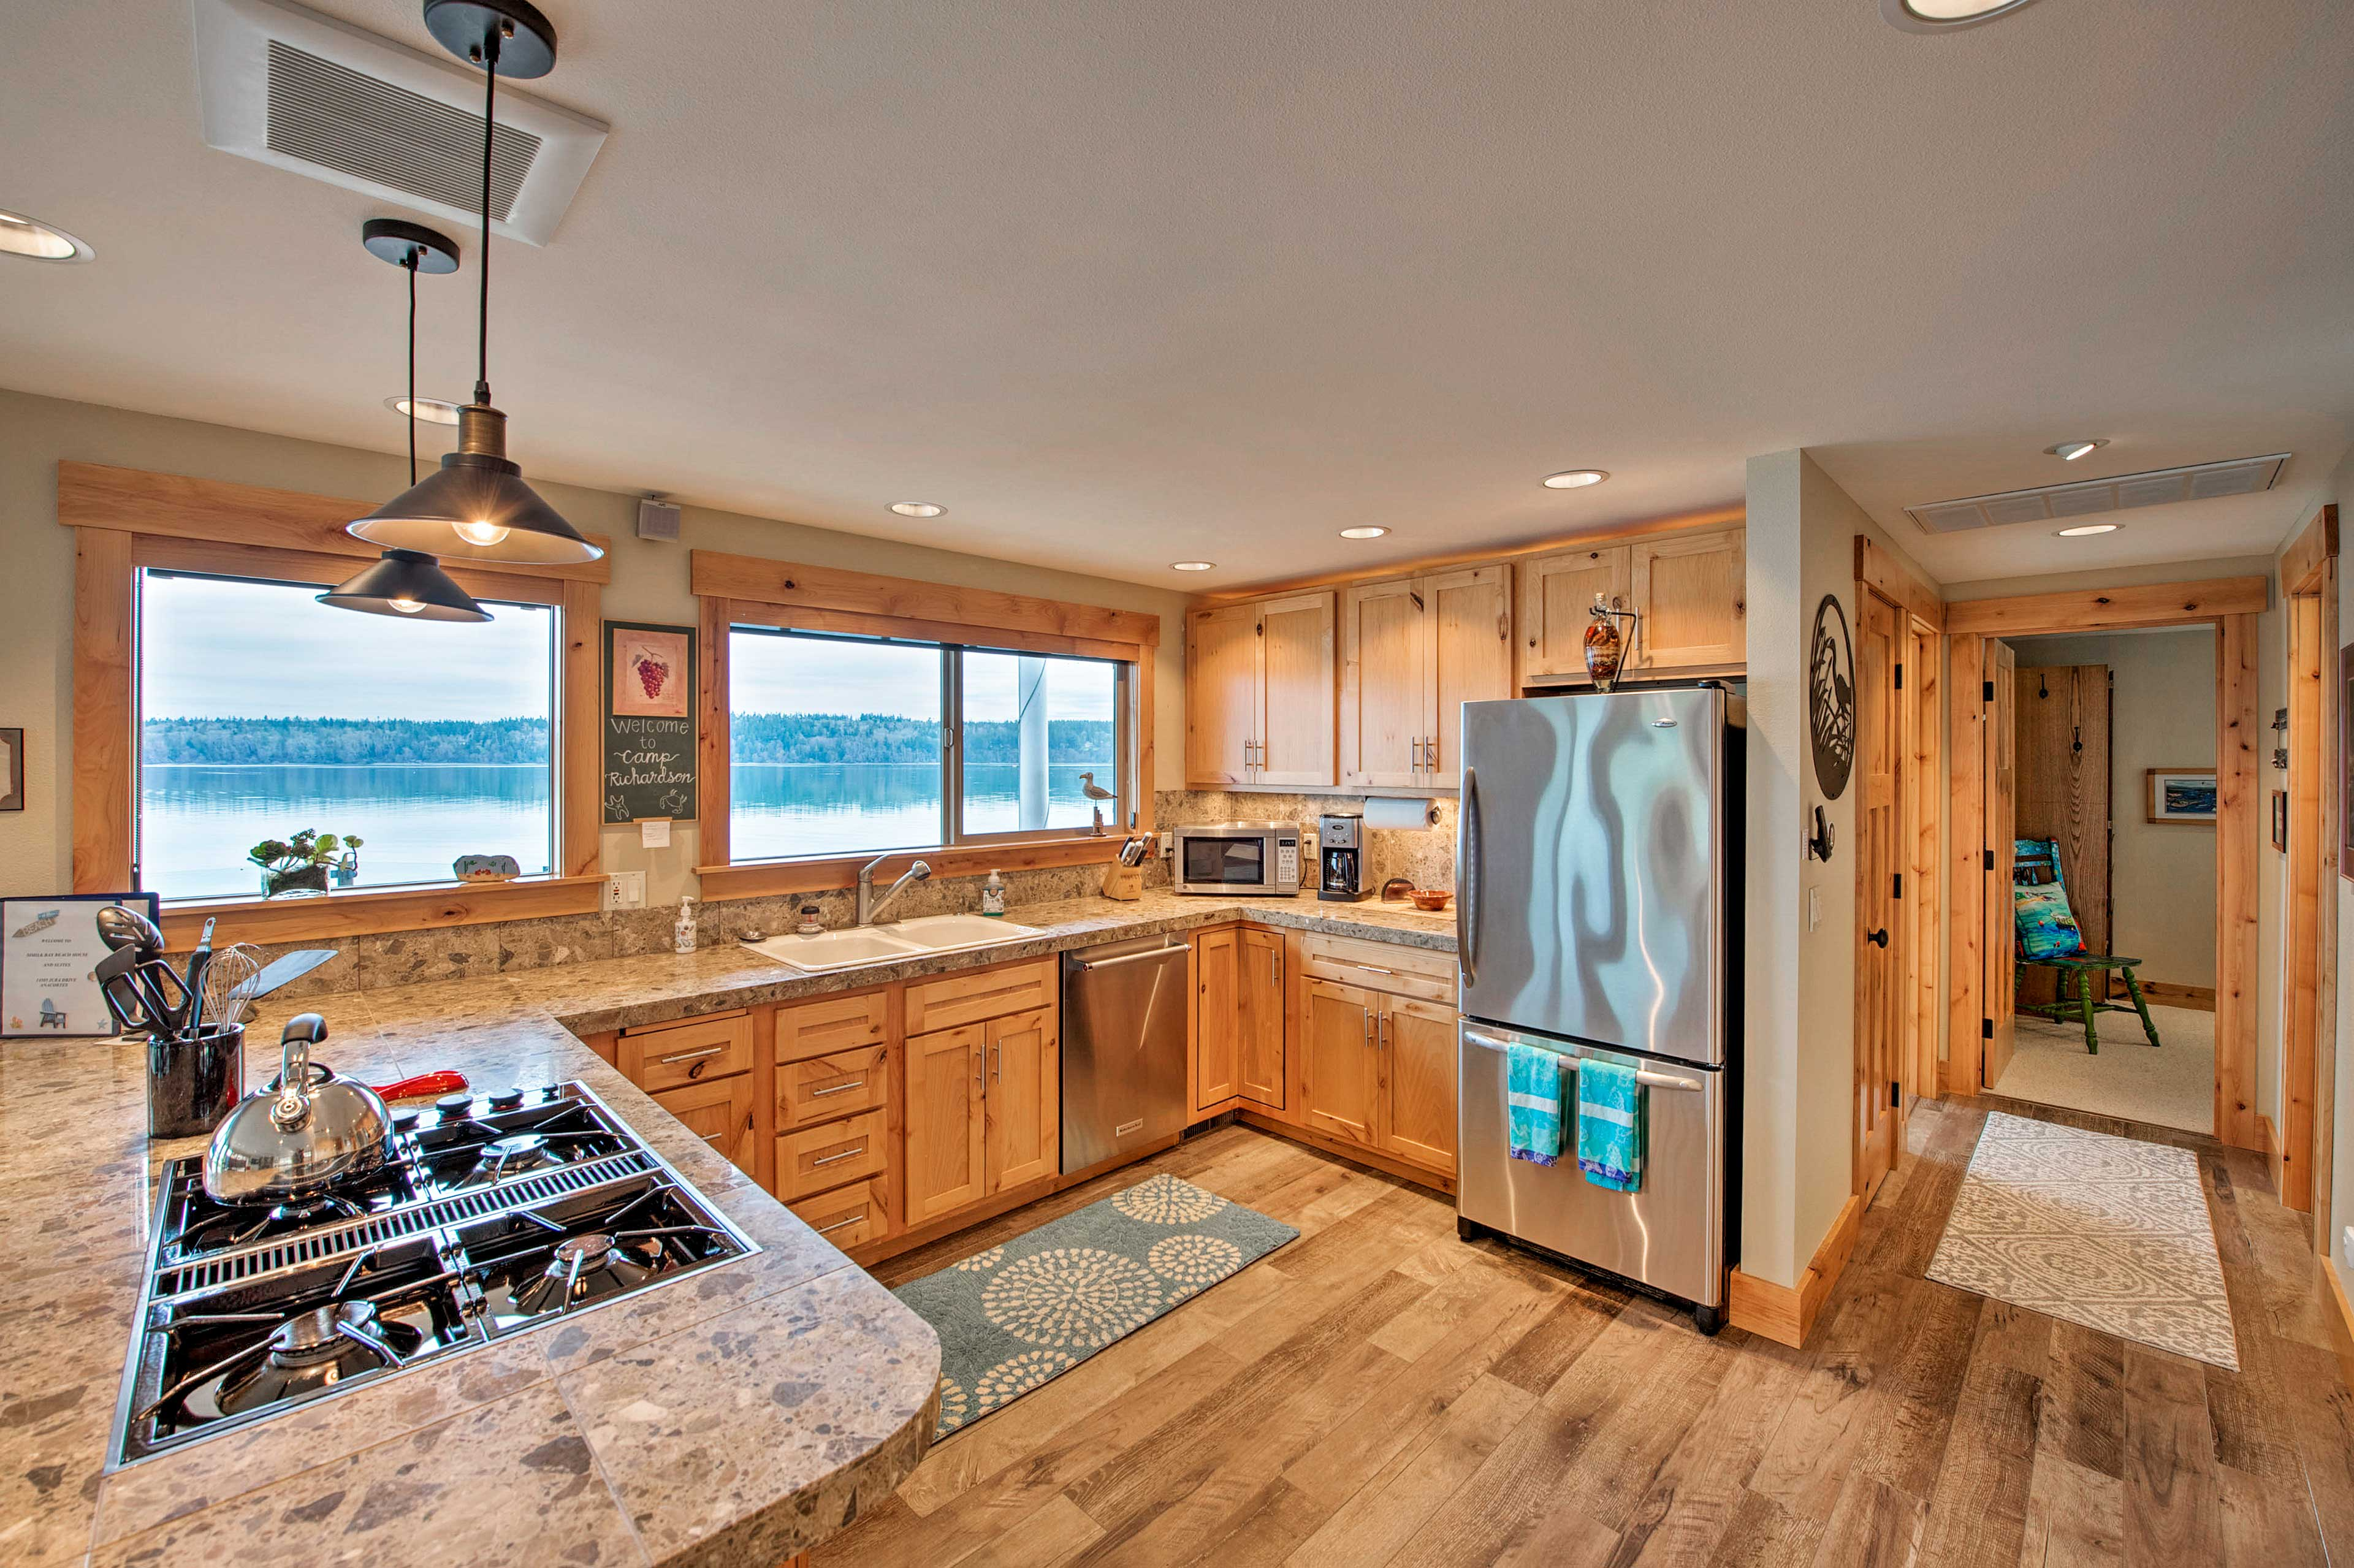 You'll have stainless steel appliances and ample space for cooking.